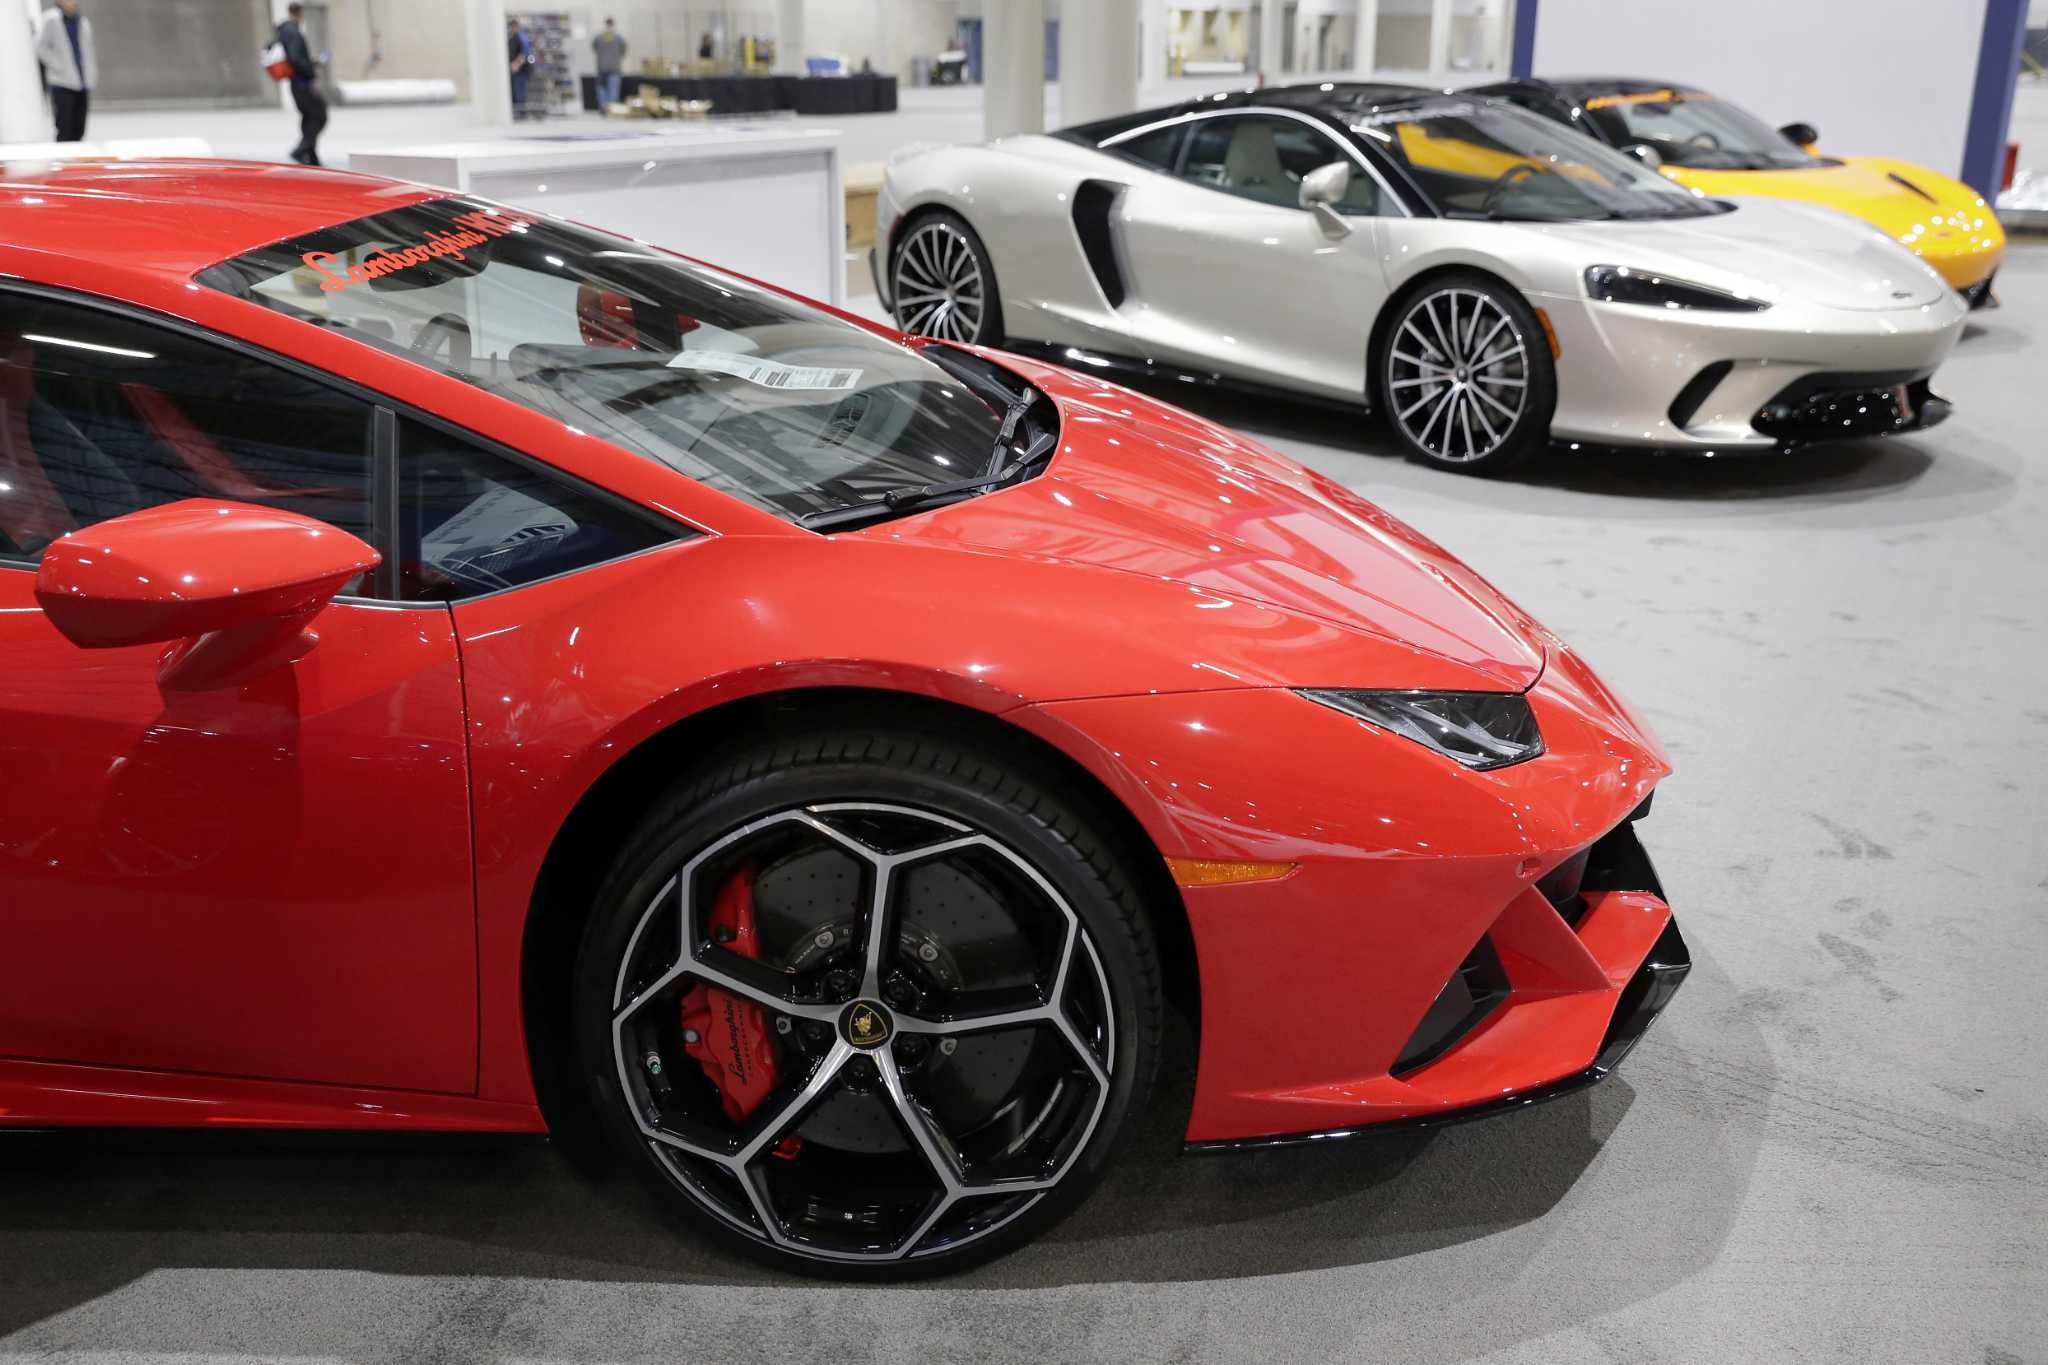 Lamborghini Porsche Seized From Houston Area Men Participating In Alleged Covid 19 Relief Scheme Laredo Morning Times